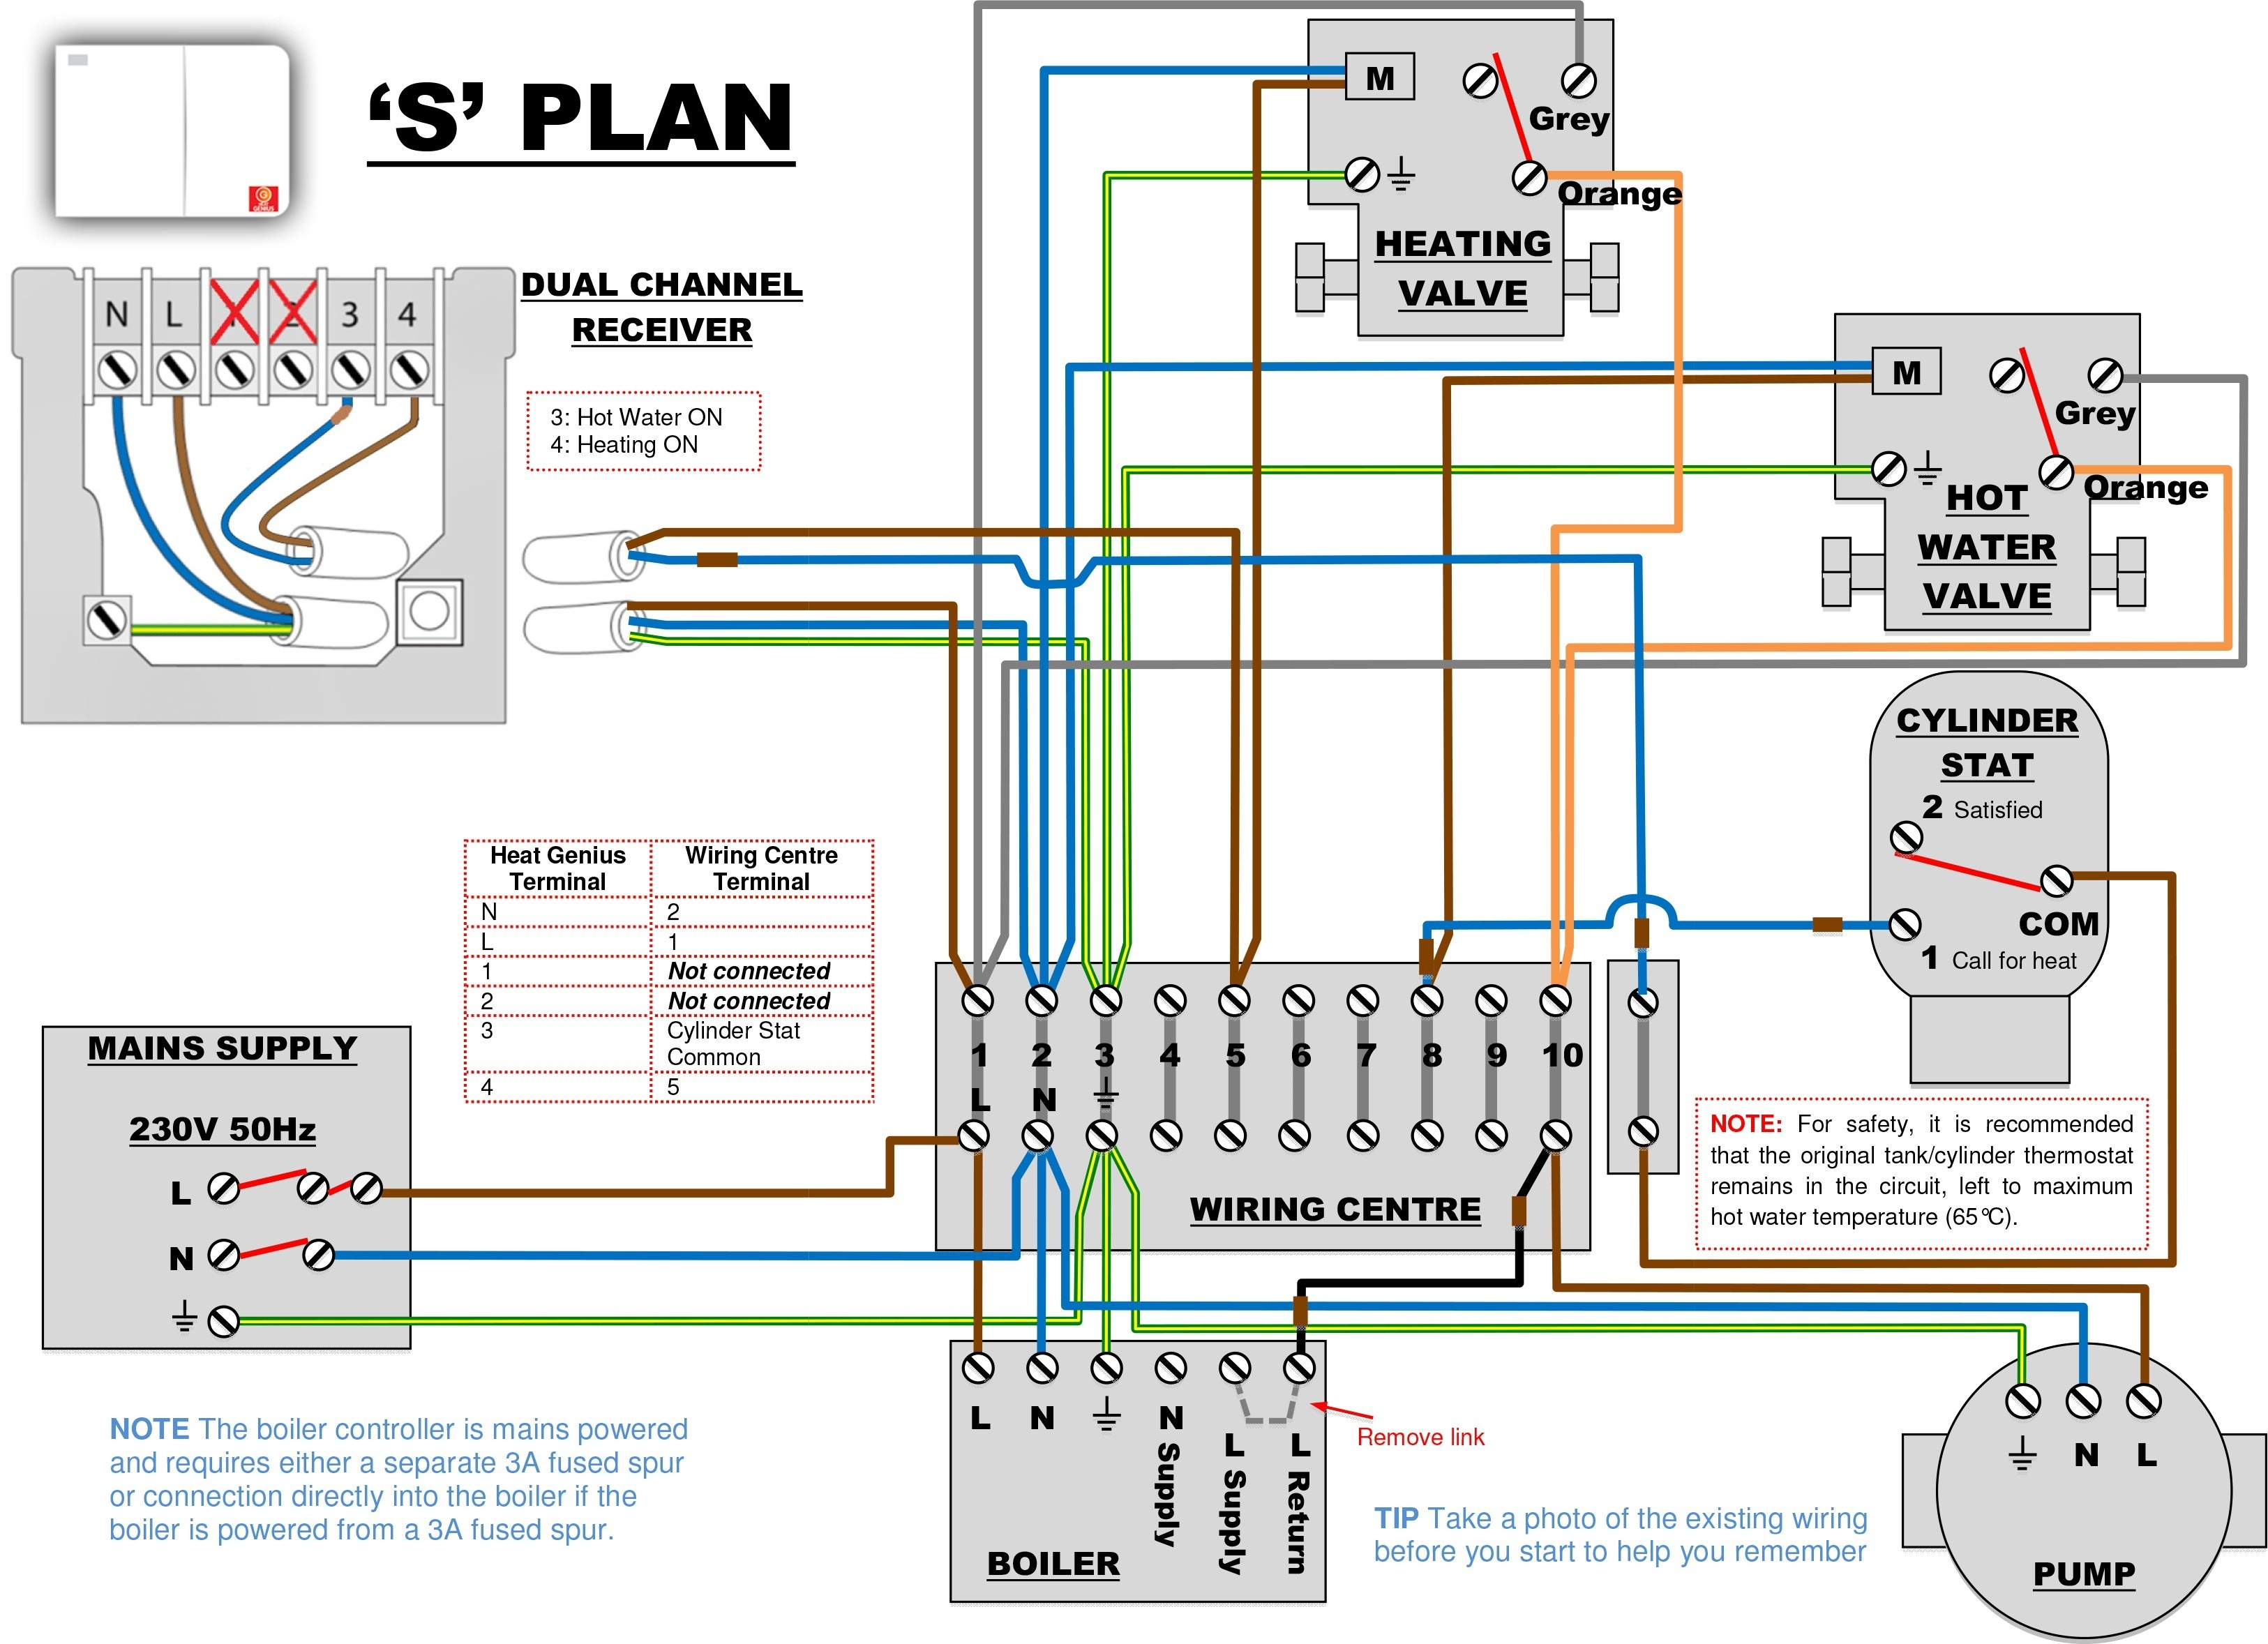 Carrier Infinity Thermostat Wiring | Wiring Diagram - Carrier Wiring Diagram